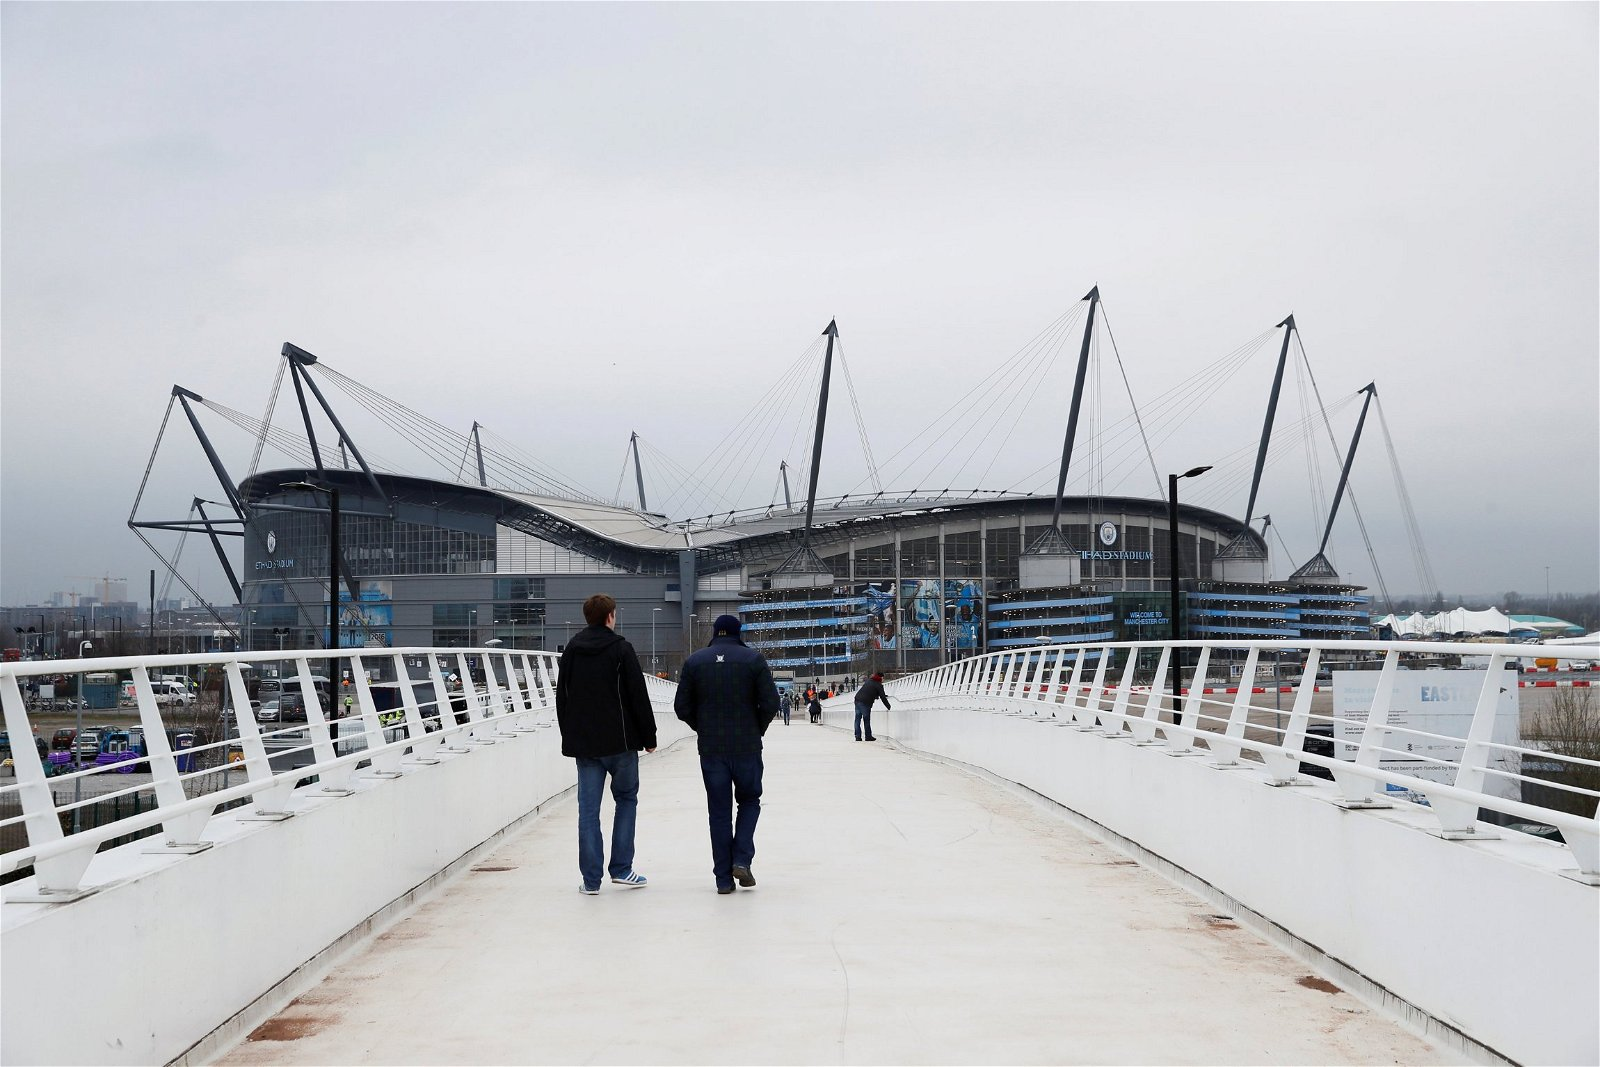 Fans arrive at the Etihad Stadium before a Man City game